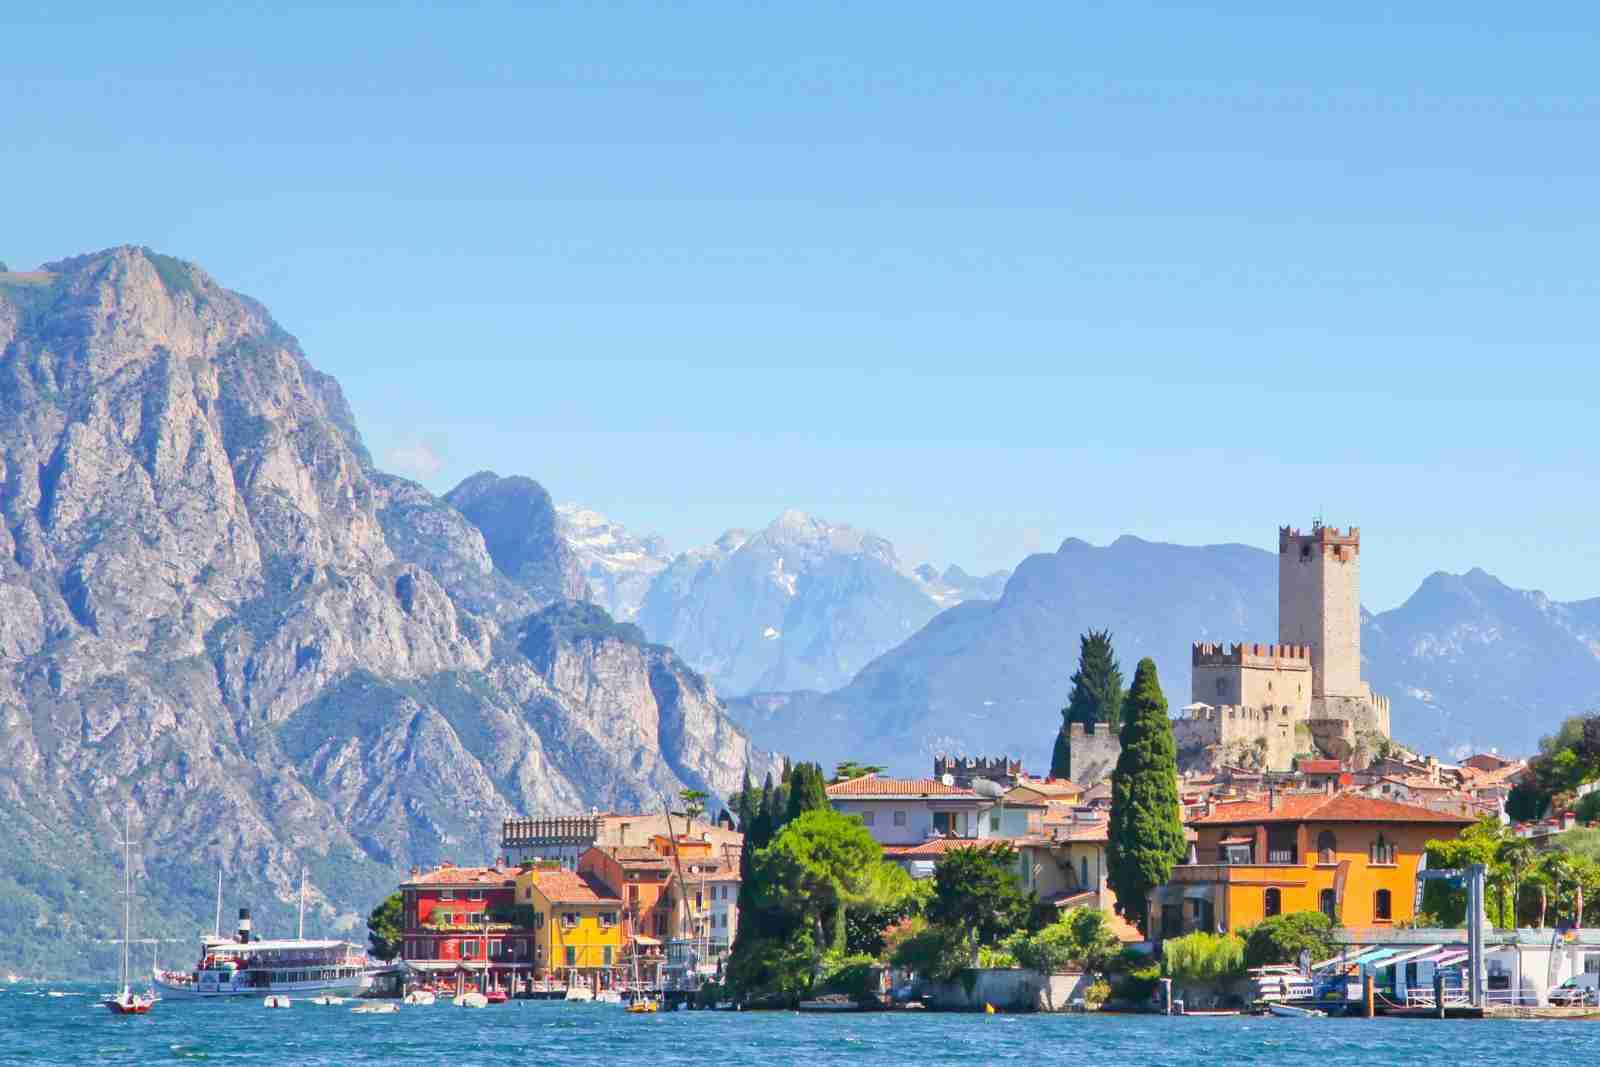 Lake Garda. (Photo by Jim Cook/Getty Images)